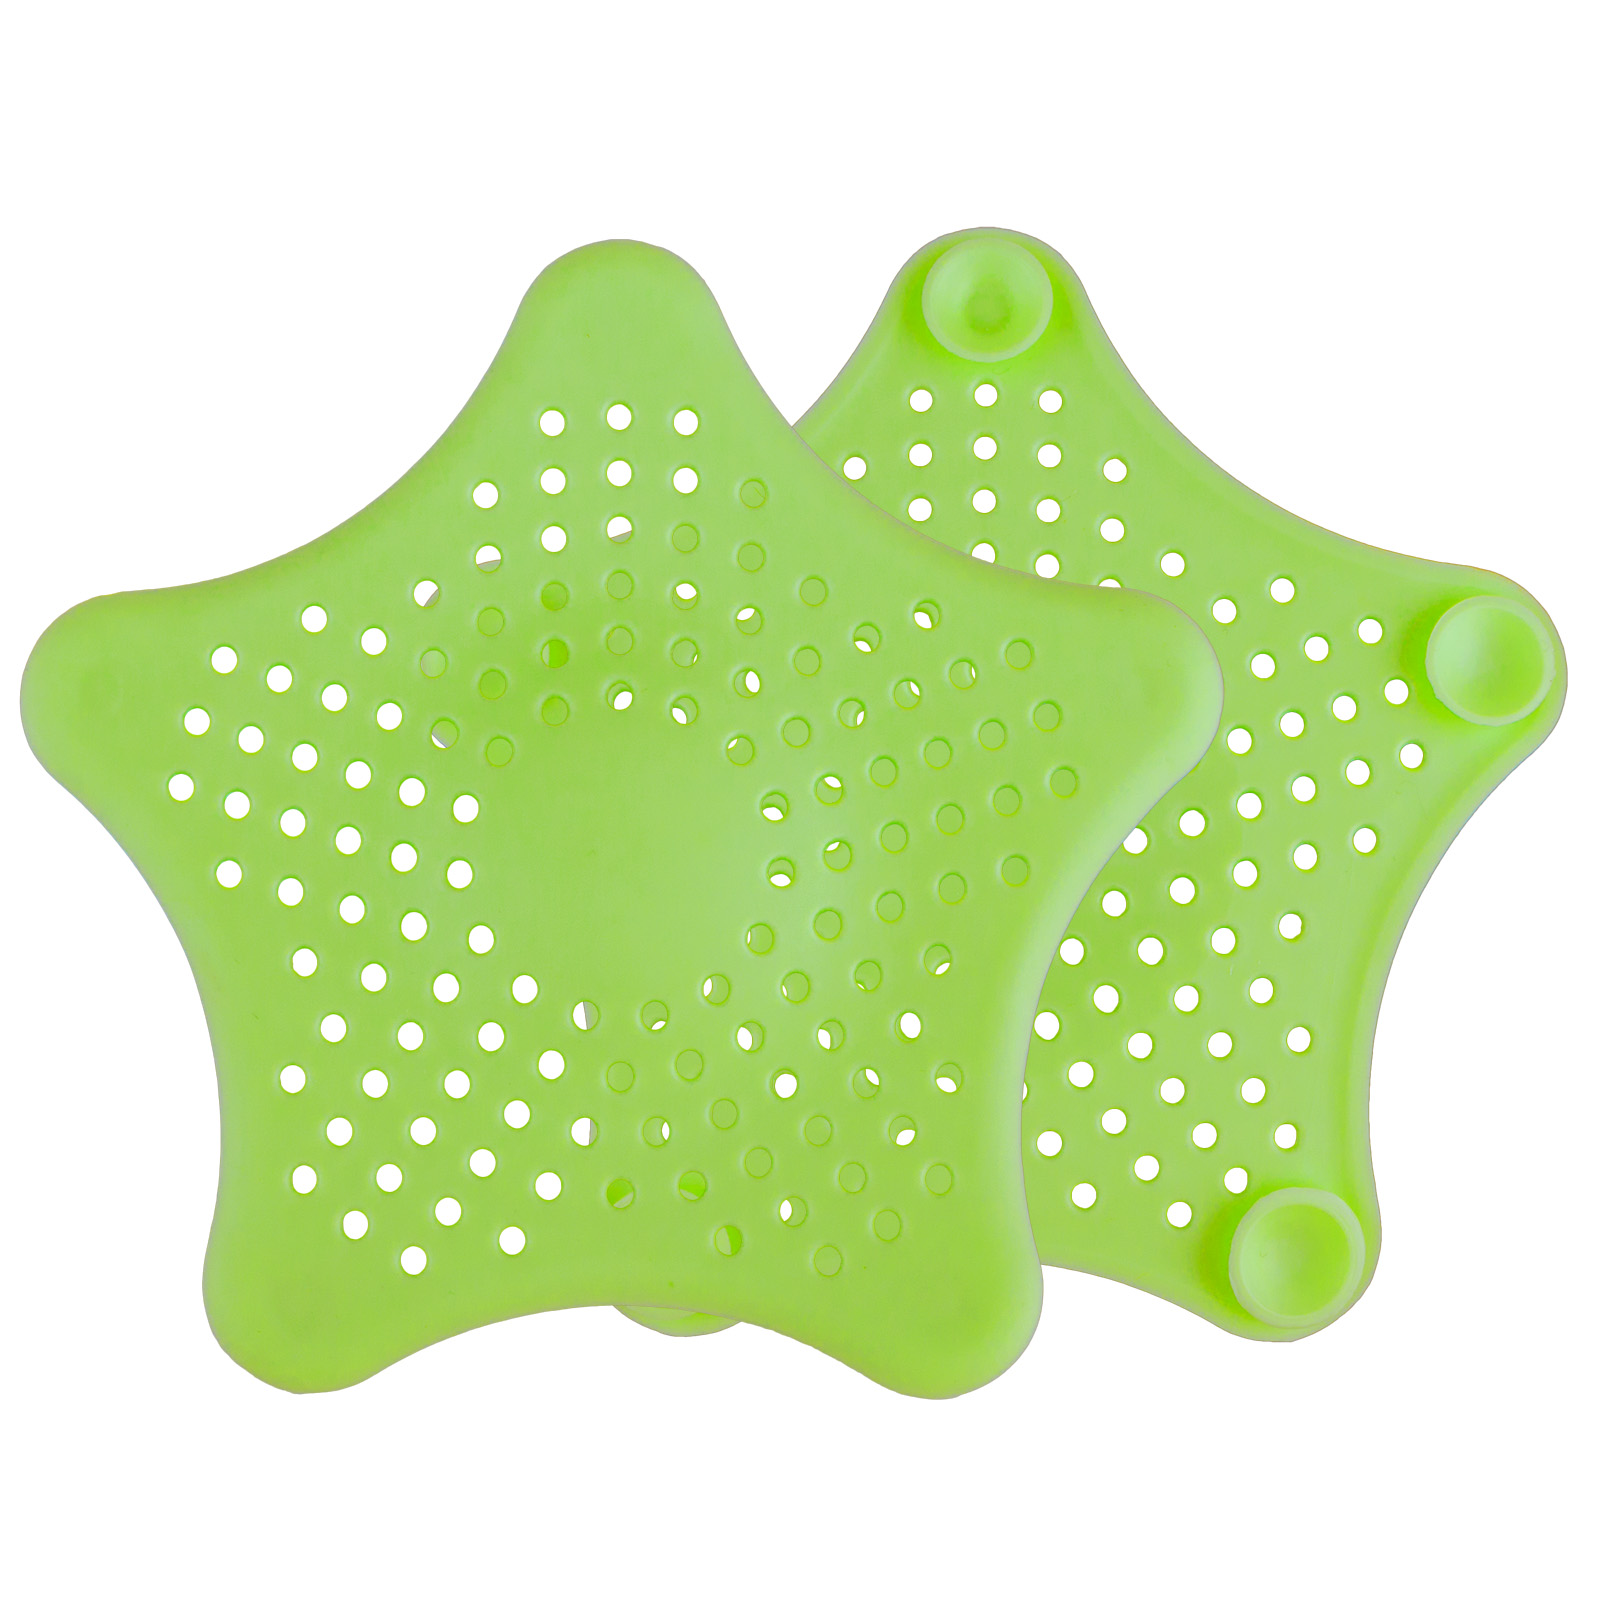 2-pack Sink Strainer Hair Stoppers, Bathroom Kitchen Sink Strainer Basket Silicone Drain Cover Drainer Basin Filter Mesh Sink Hole Cover